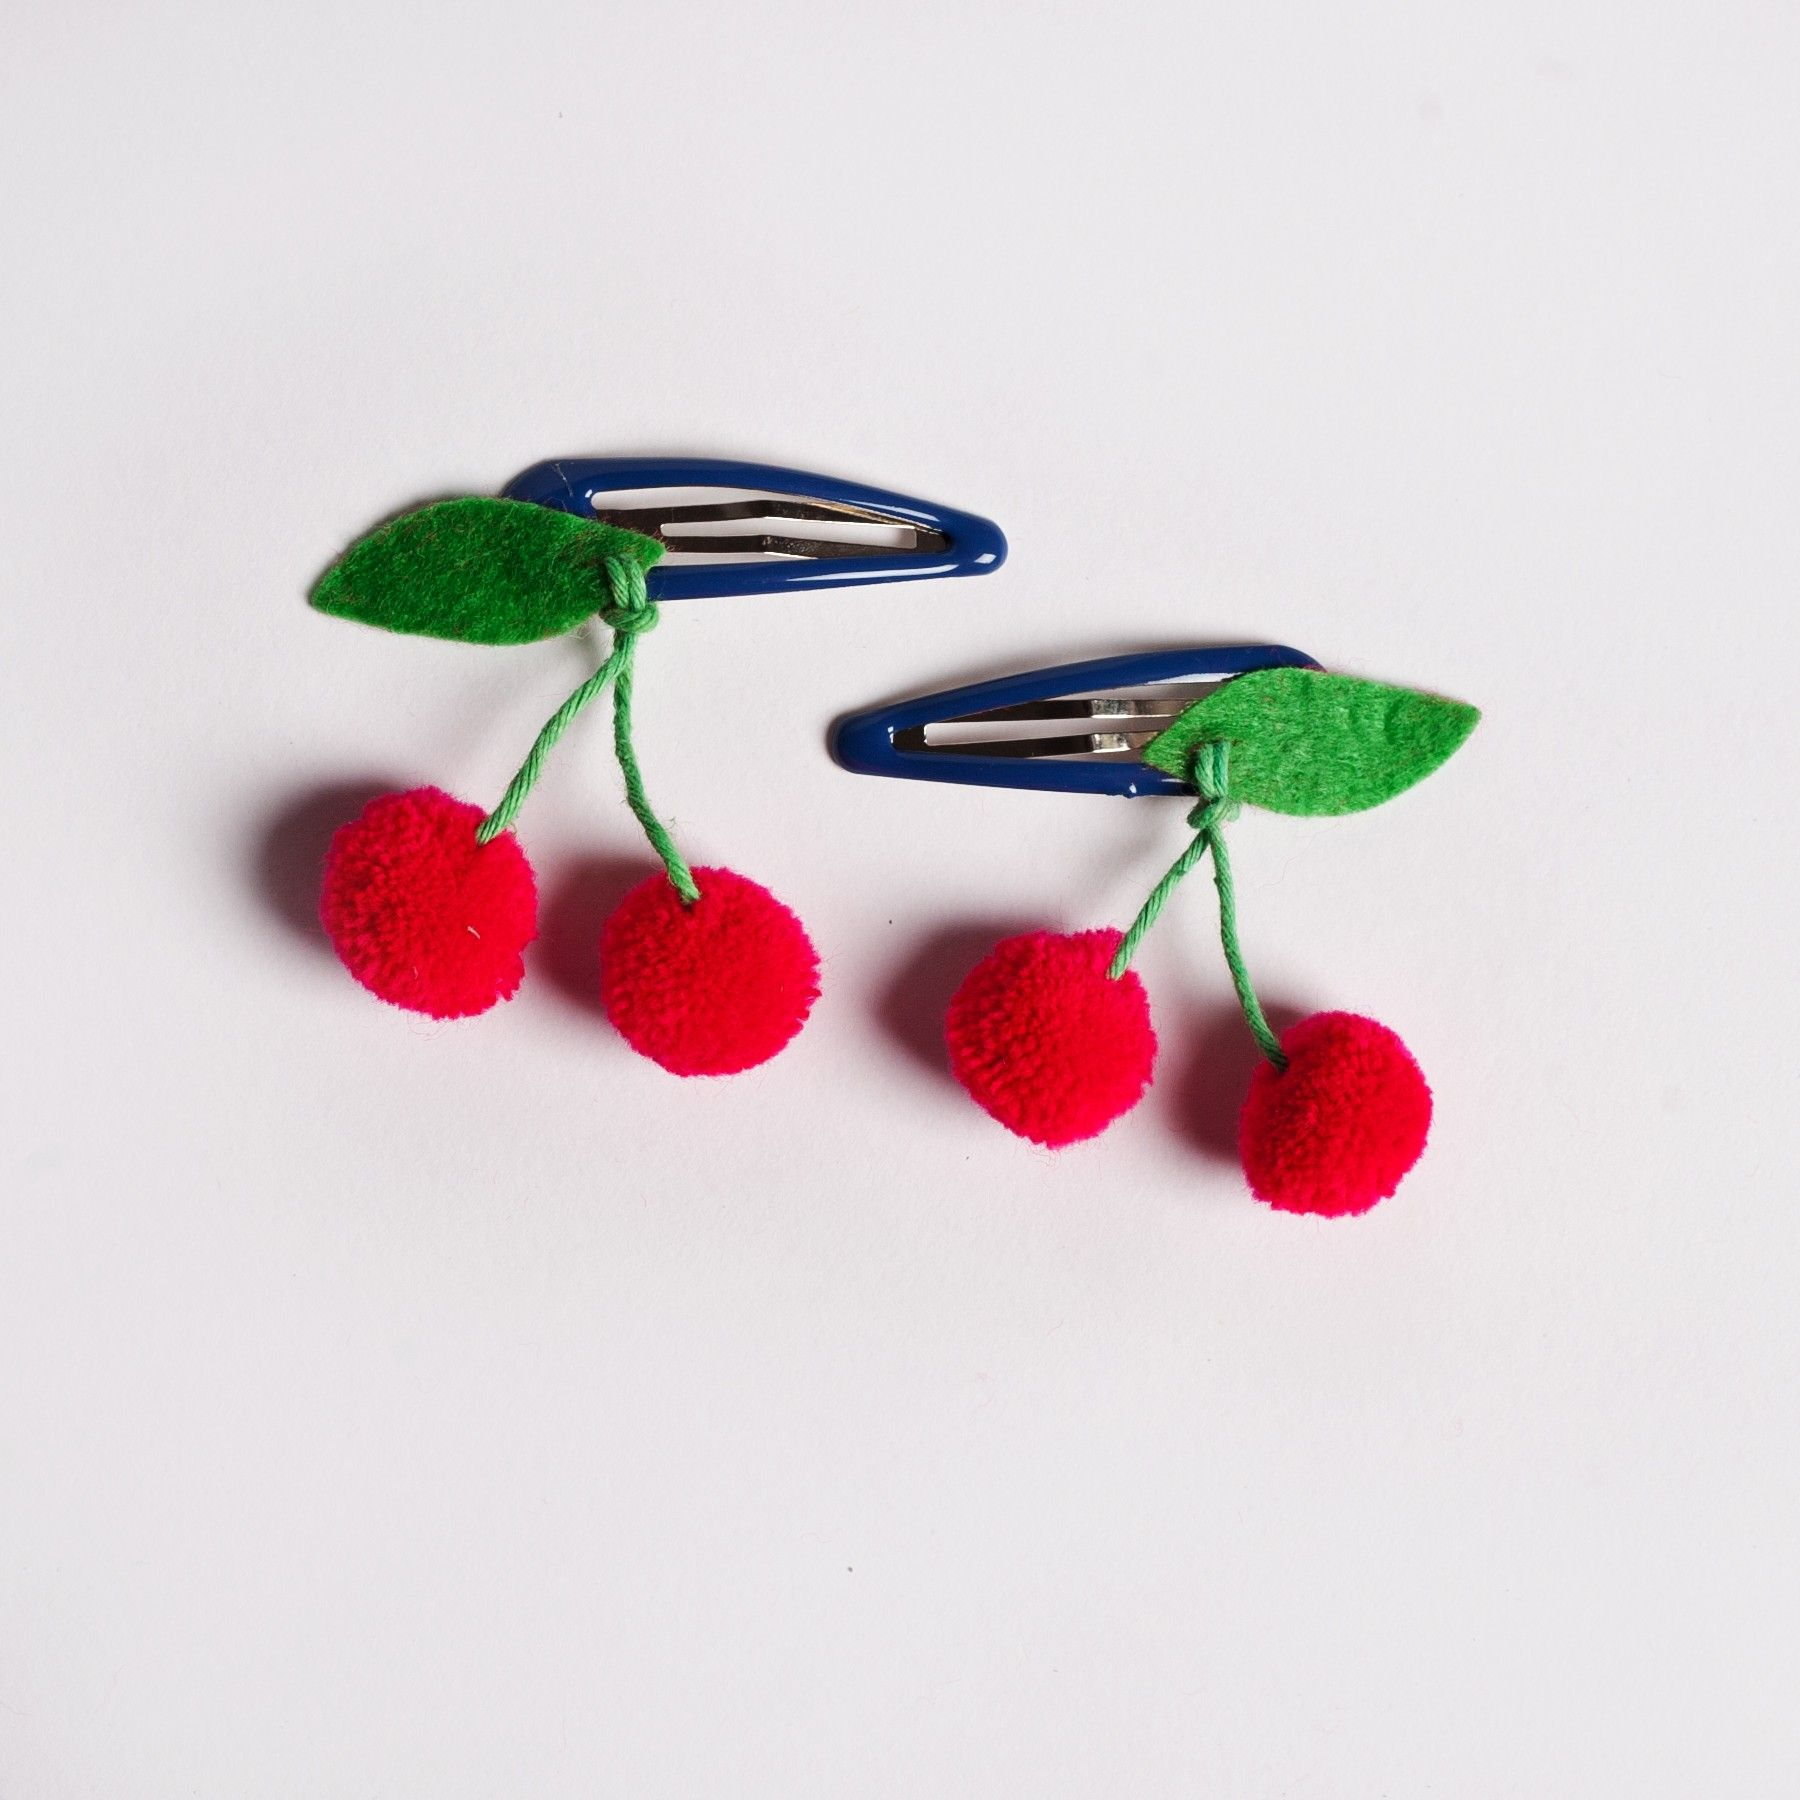 Sweet Thing Cherry Hair Clips - Accessories - Wearing